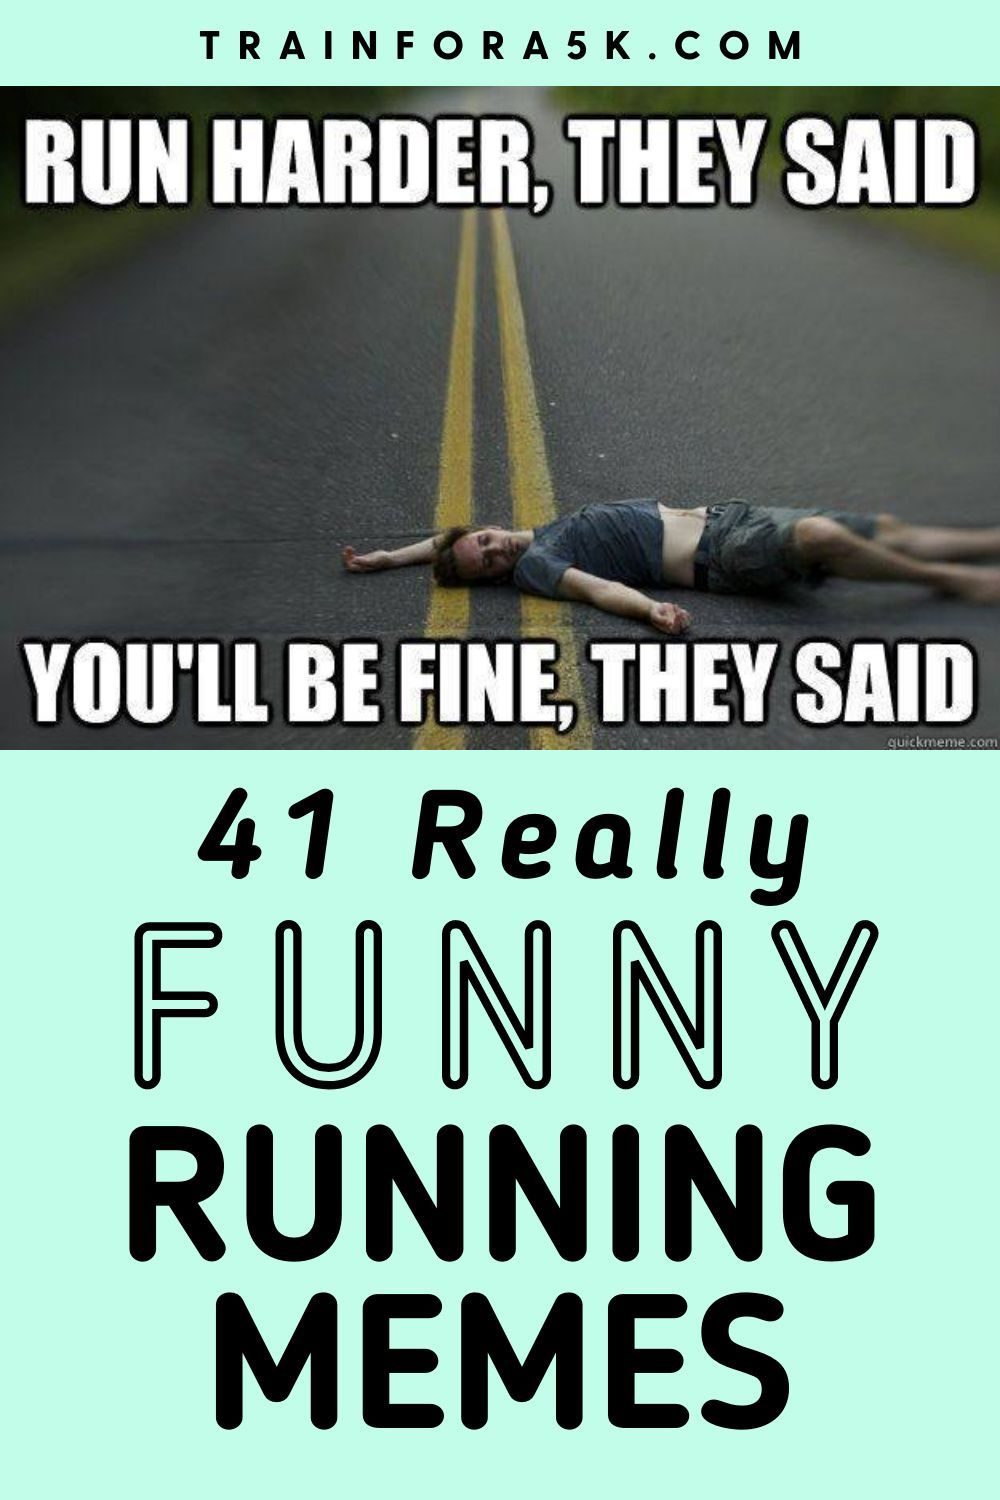 41 Really Funny Running Jokes Memes Observations Train For A 5k Com In 2021 Running Quotes Funny Funny Running Memes Running Jokes